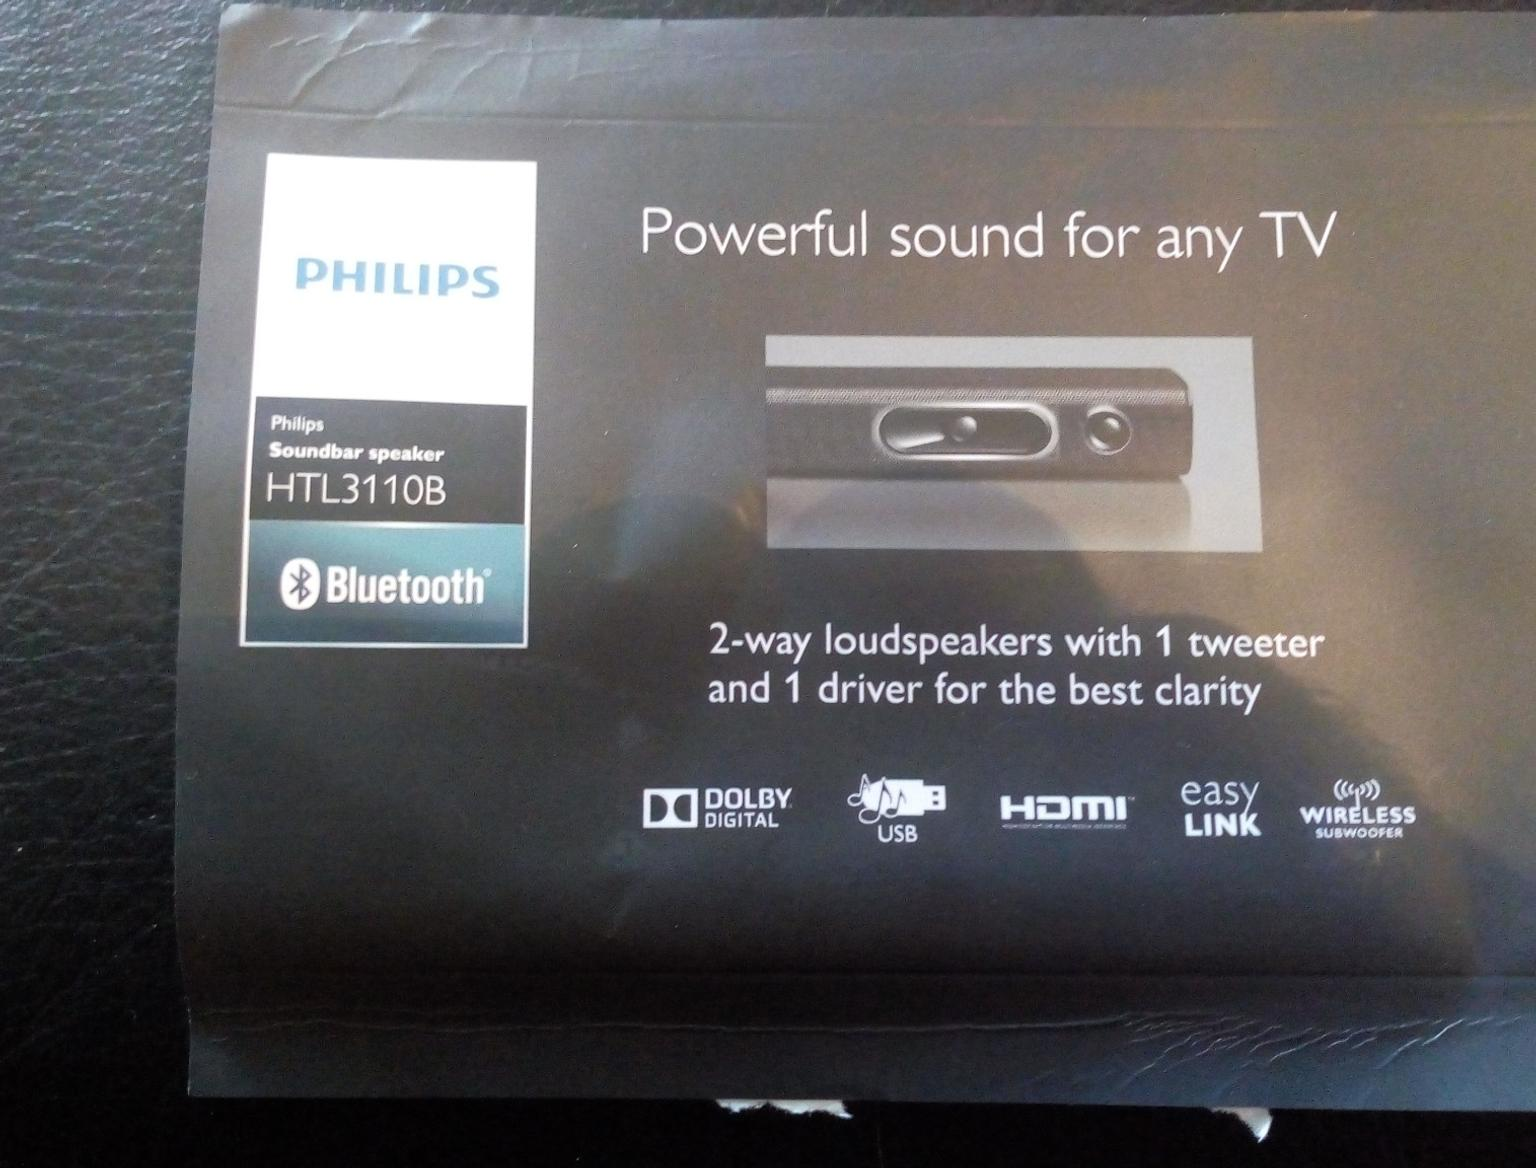 Phillips soundbar with wireless subwoofer